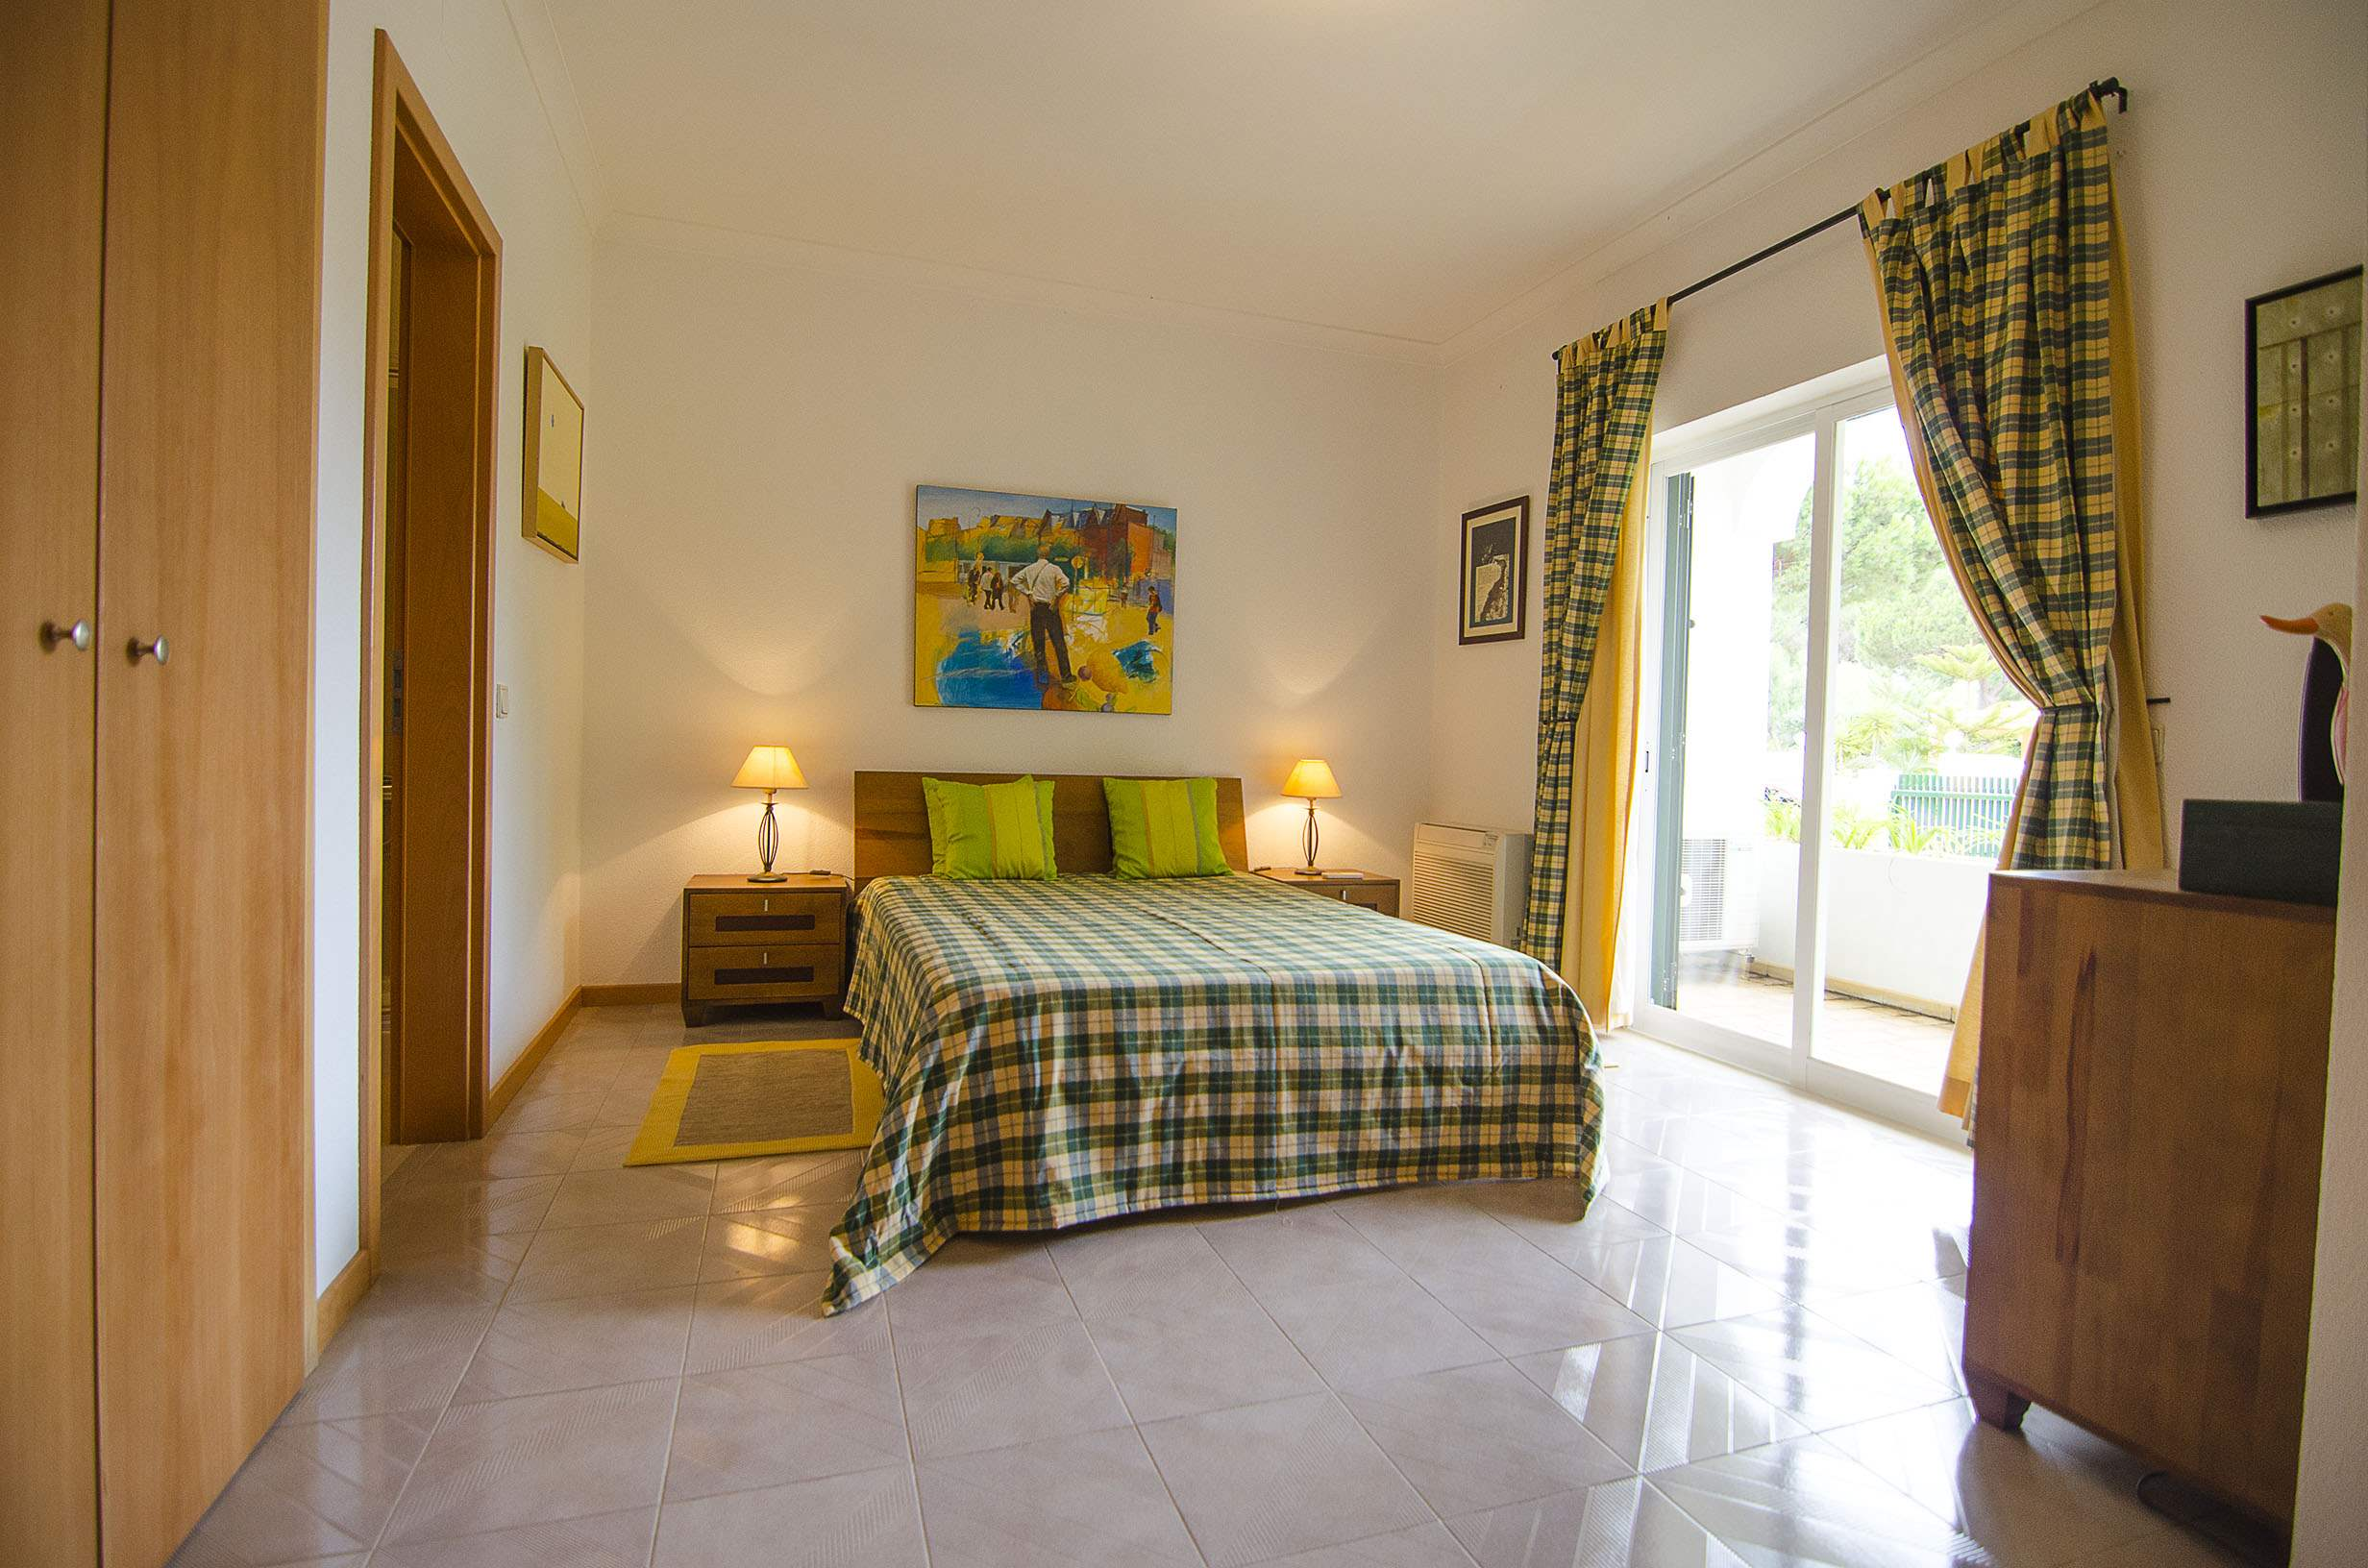 Villa Clara, 4 bedroom villa in Vilamoura Area, Algarve Photo #14